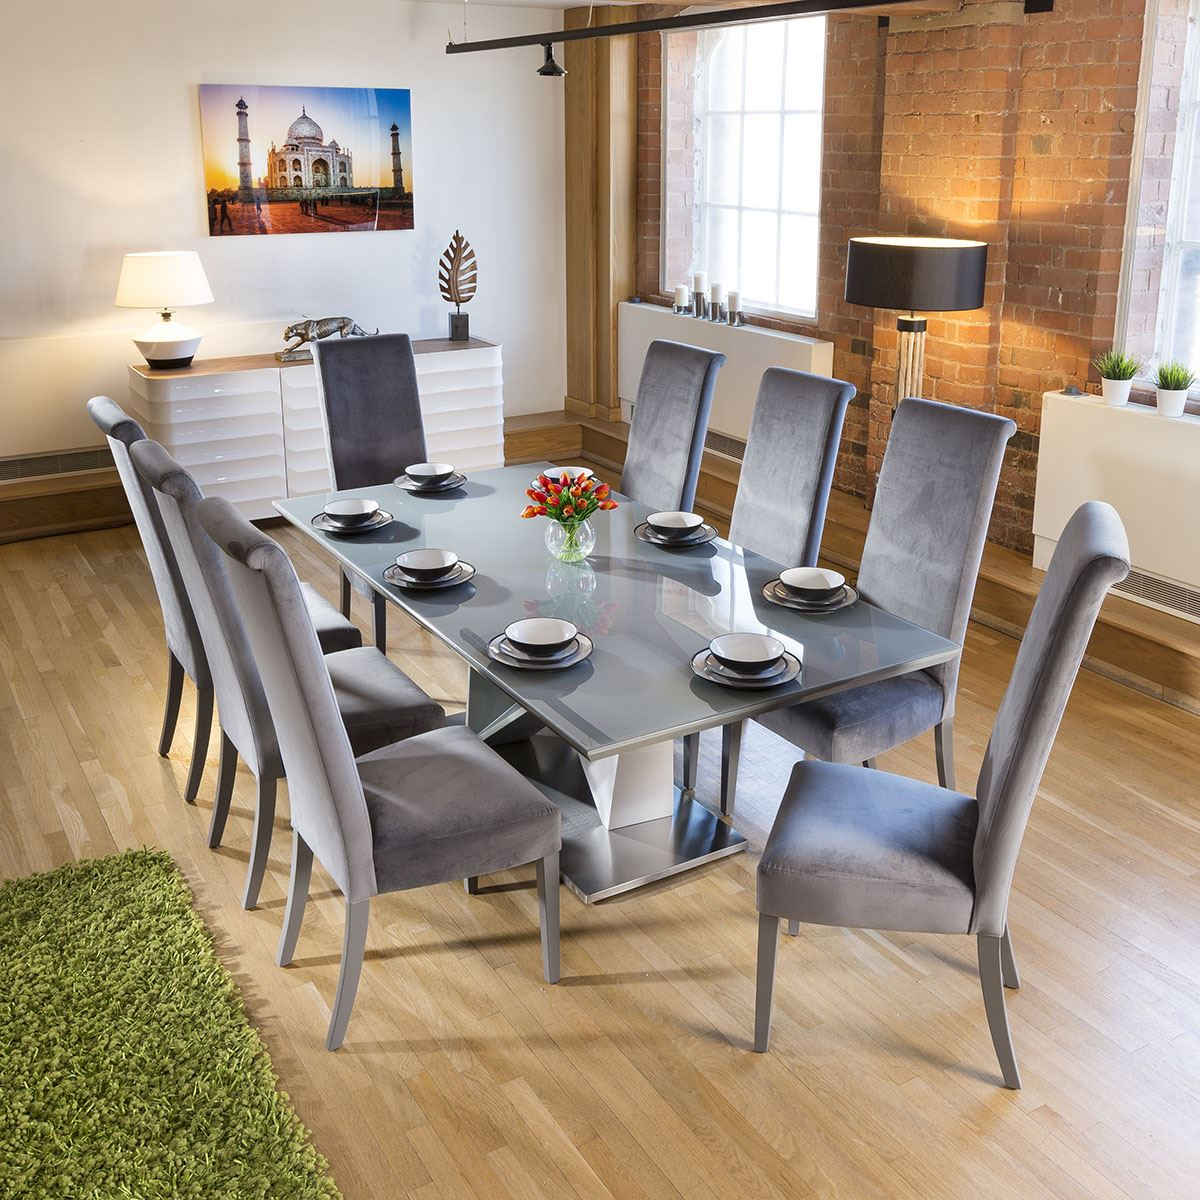 Large 8 Seater Dining Set 2 2mt Grey Glass Table 8 Tall Grey Chairs Ebay